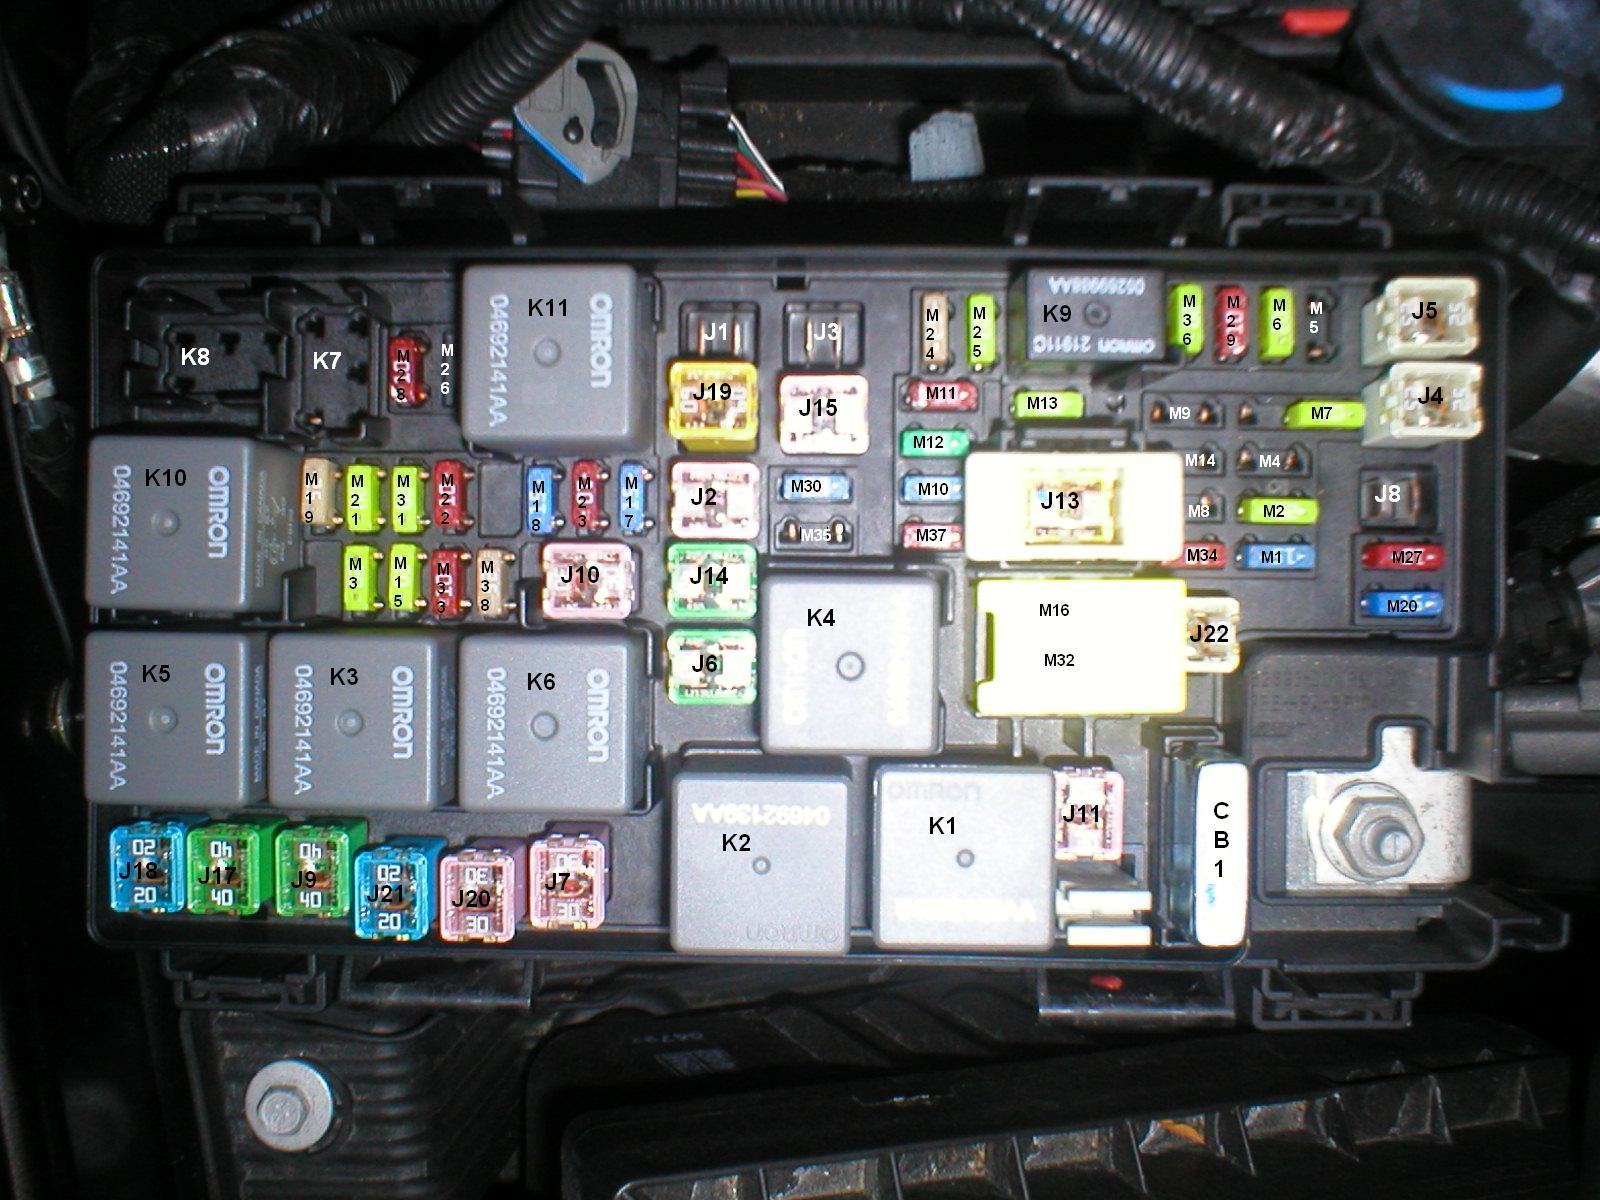 hight resolution of jeep jk fuse box map layout diagram jeepforum com 2004 jeep wrangler sport